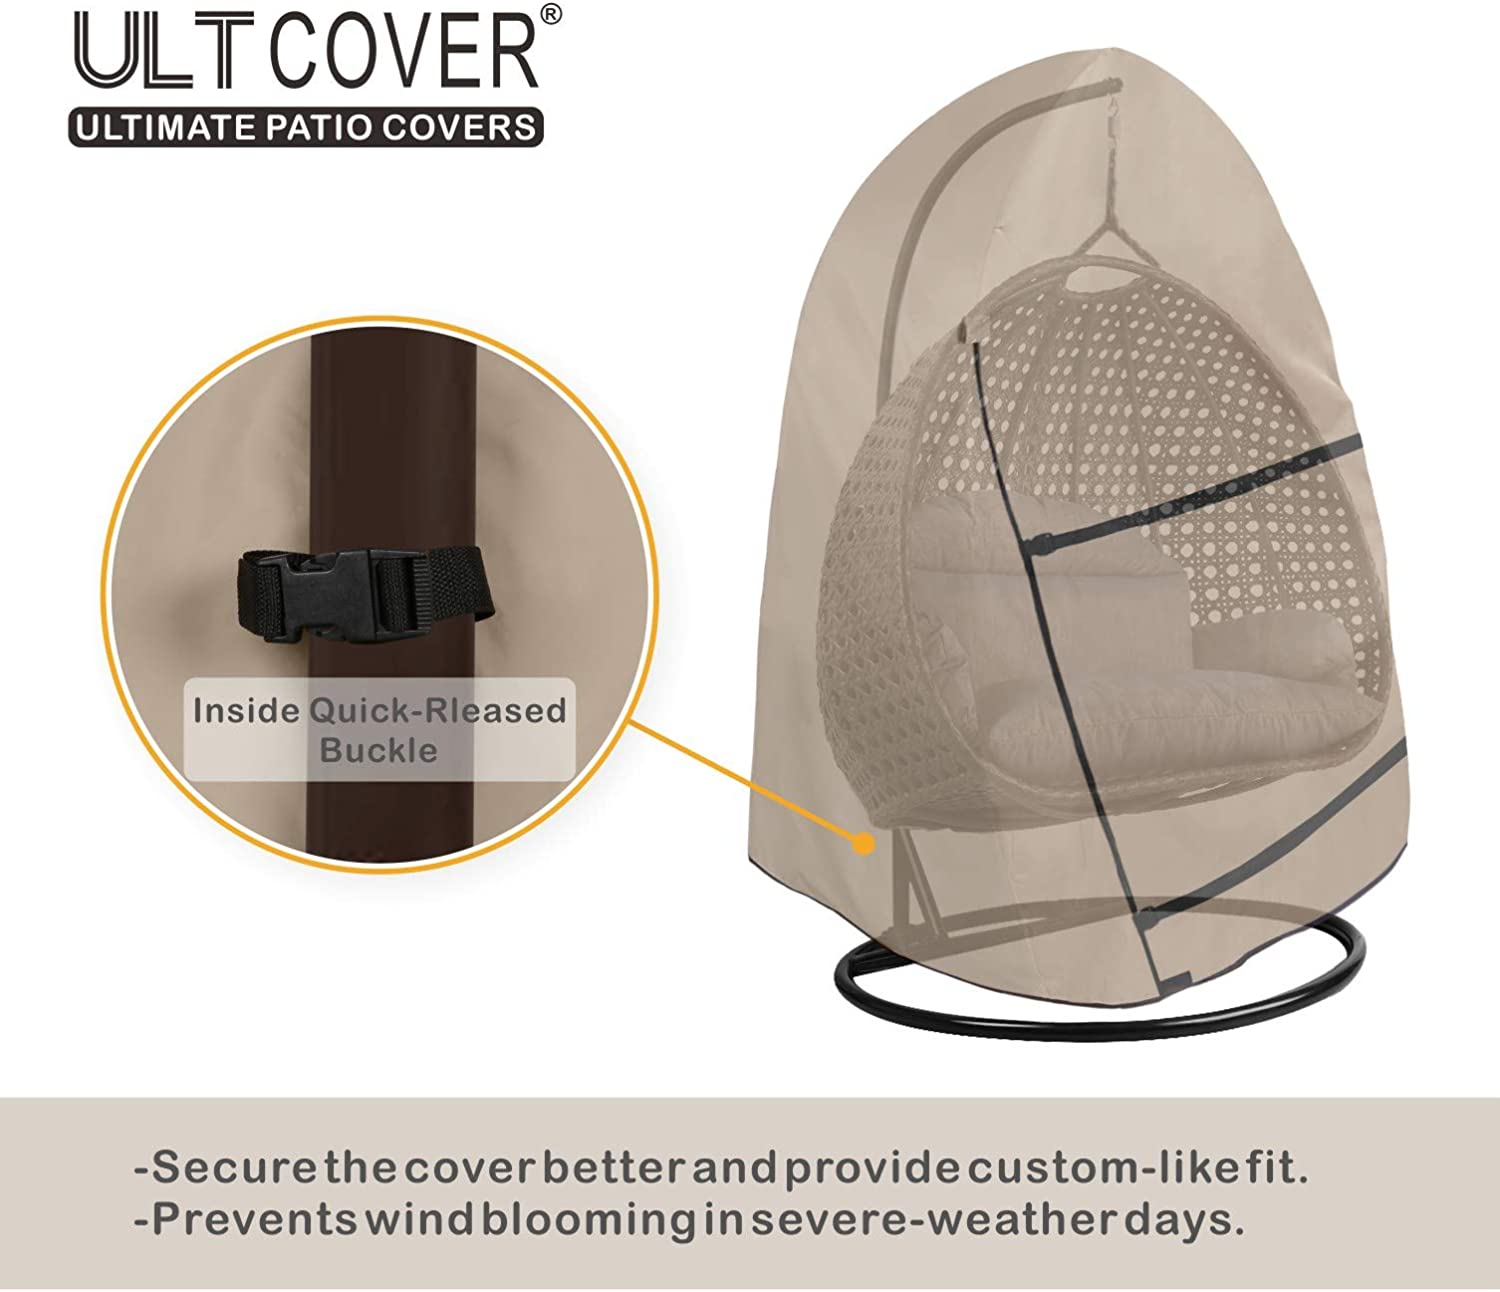 ULTCOVER Patio Hanging Egg Chair Cover Waterproof Outdoor Double Seat Swing Egg Chair with Stand Cover 66W x 43D x 68H inches